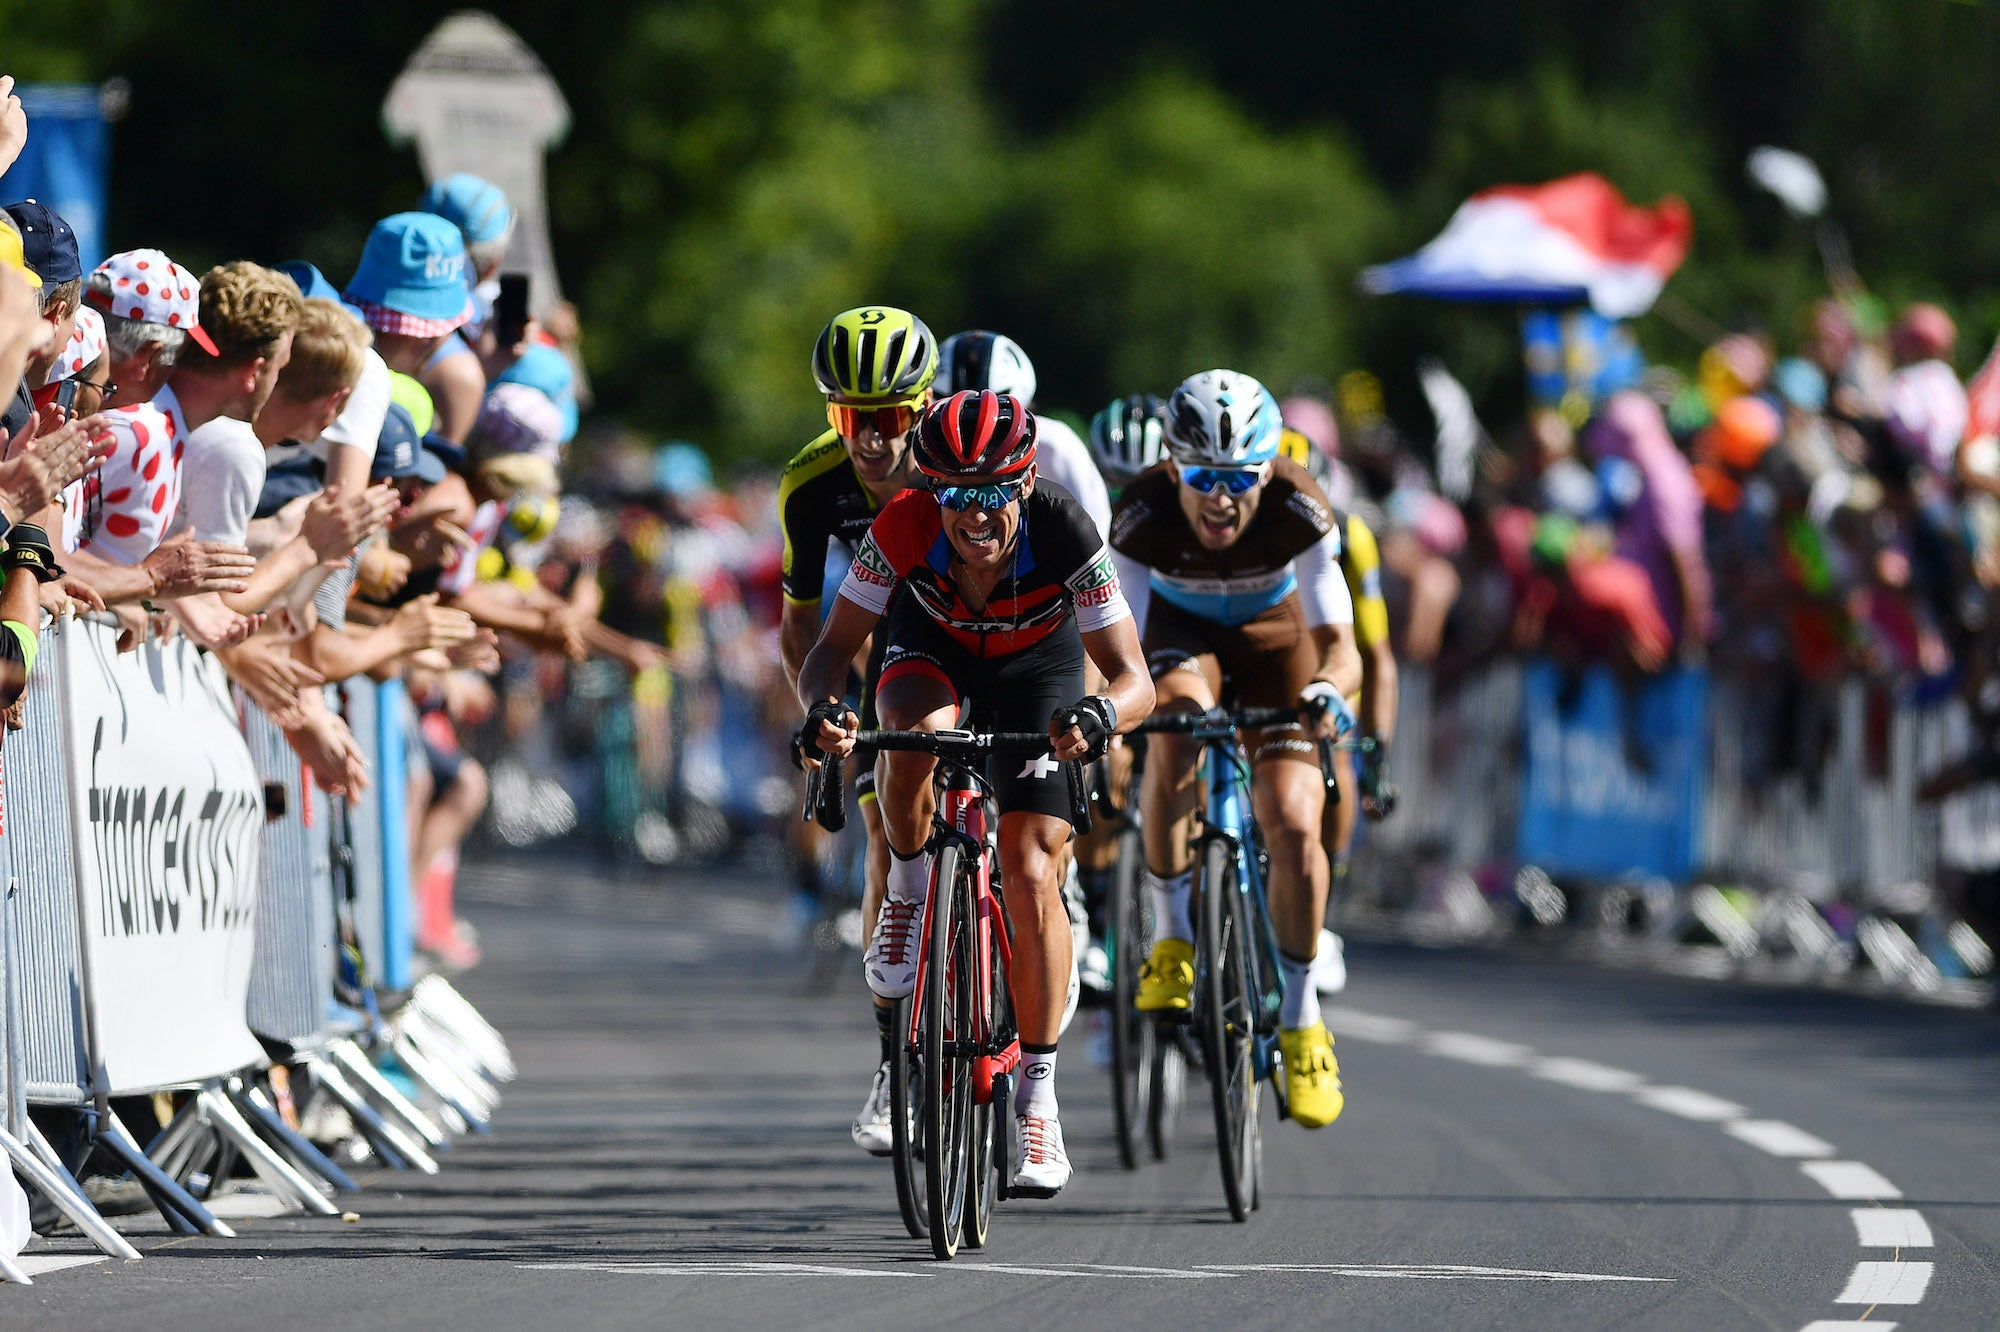 Tour de Hoody: 2021 route delivers challenging opening weekend – VeloNews.com